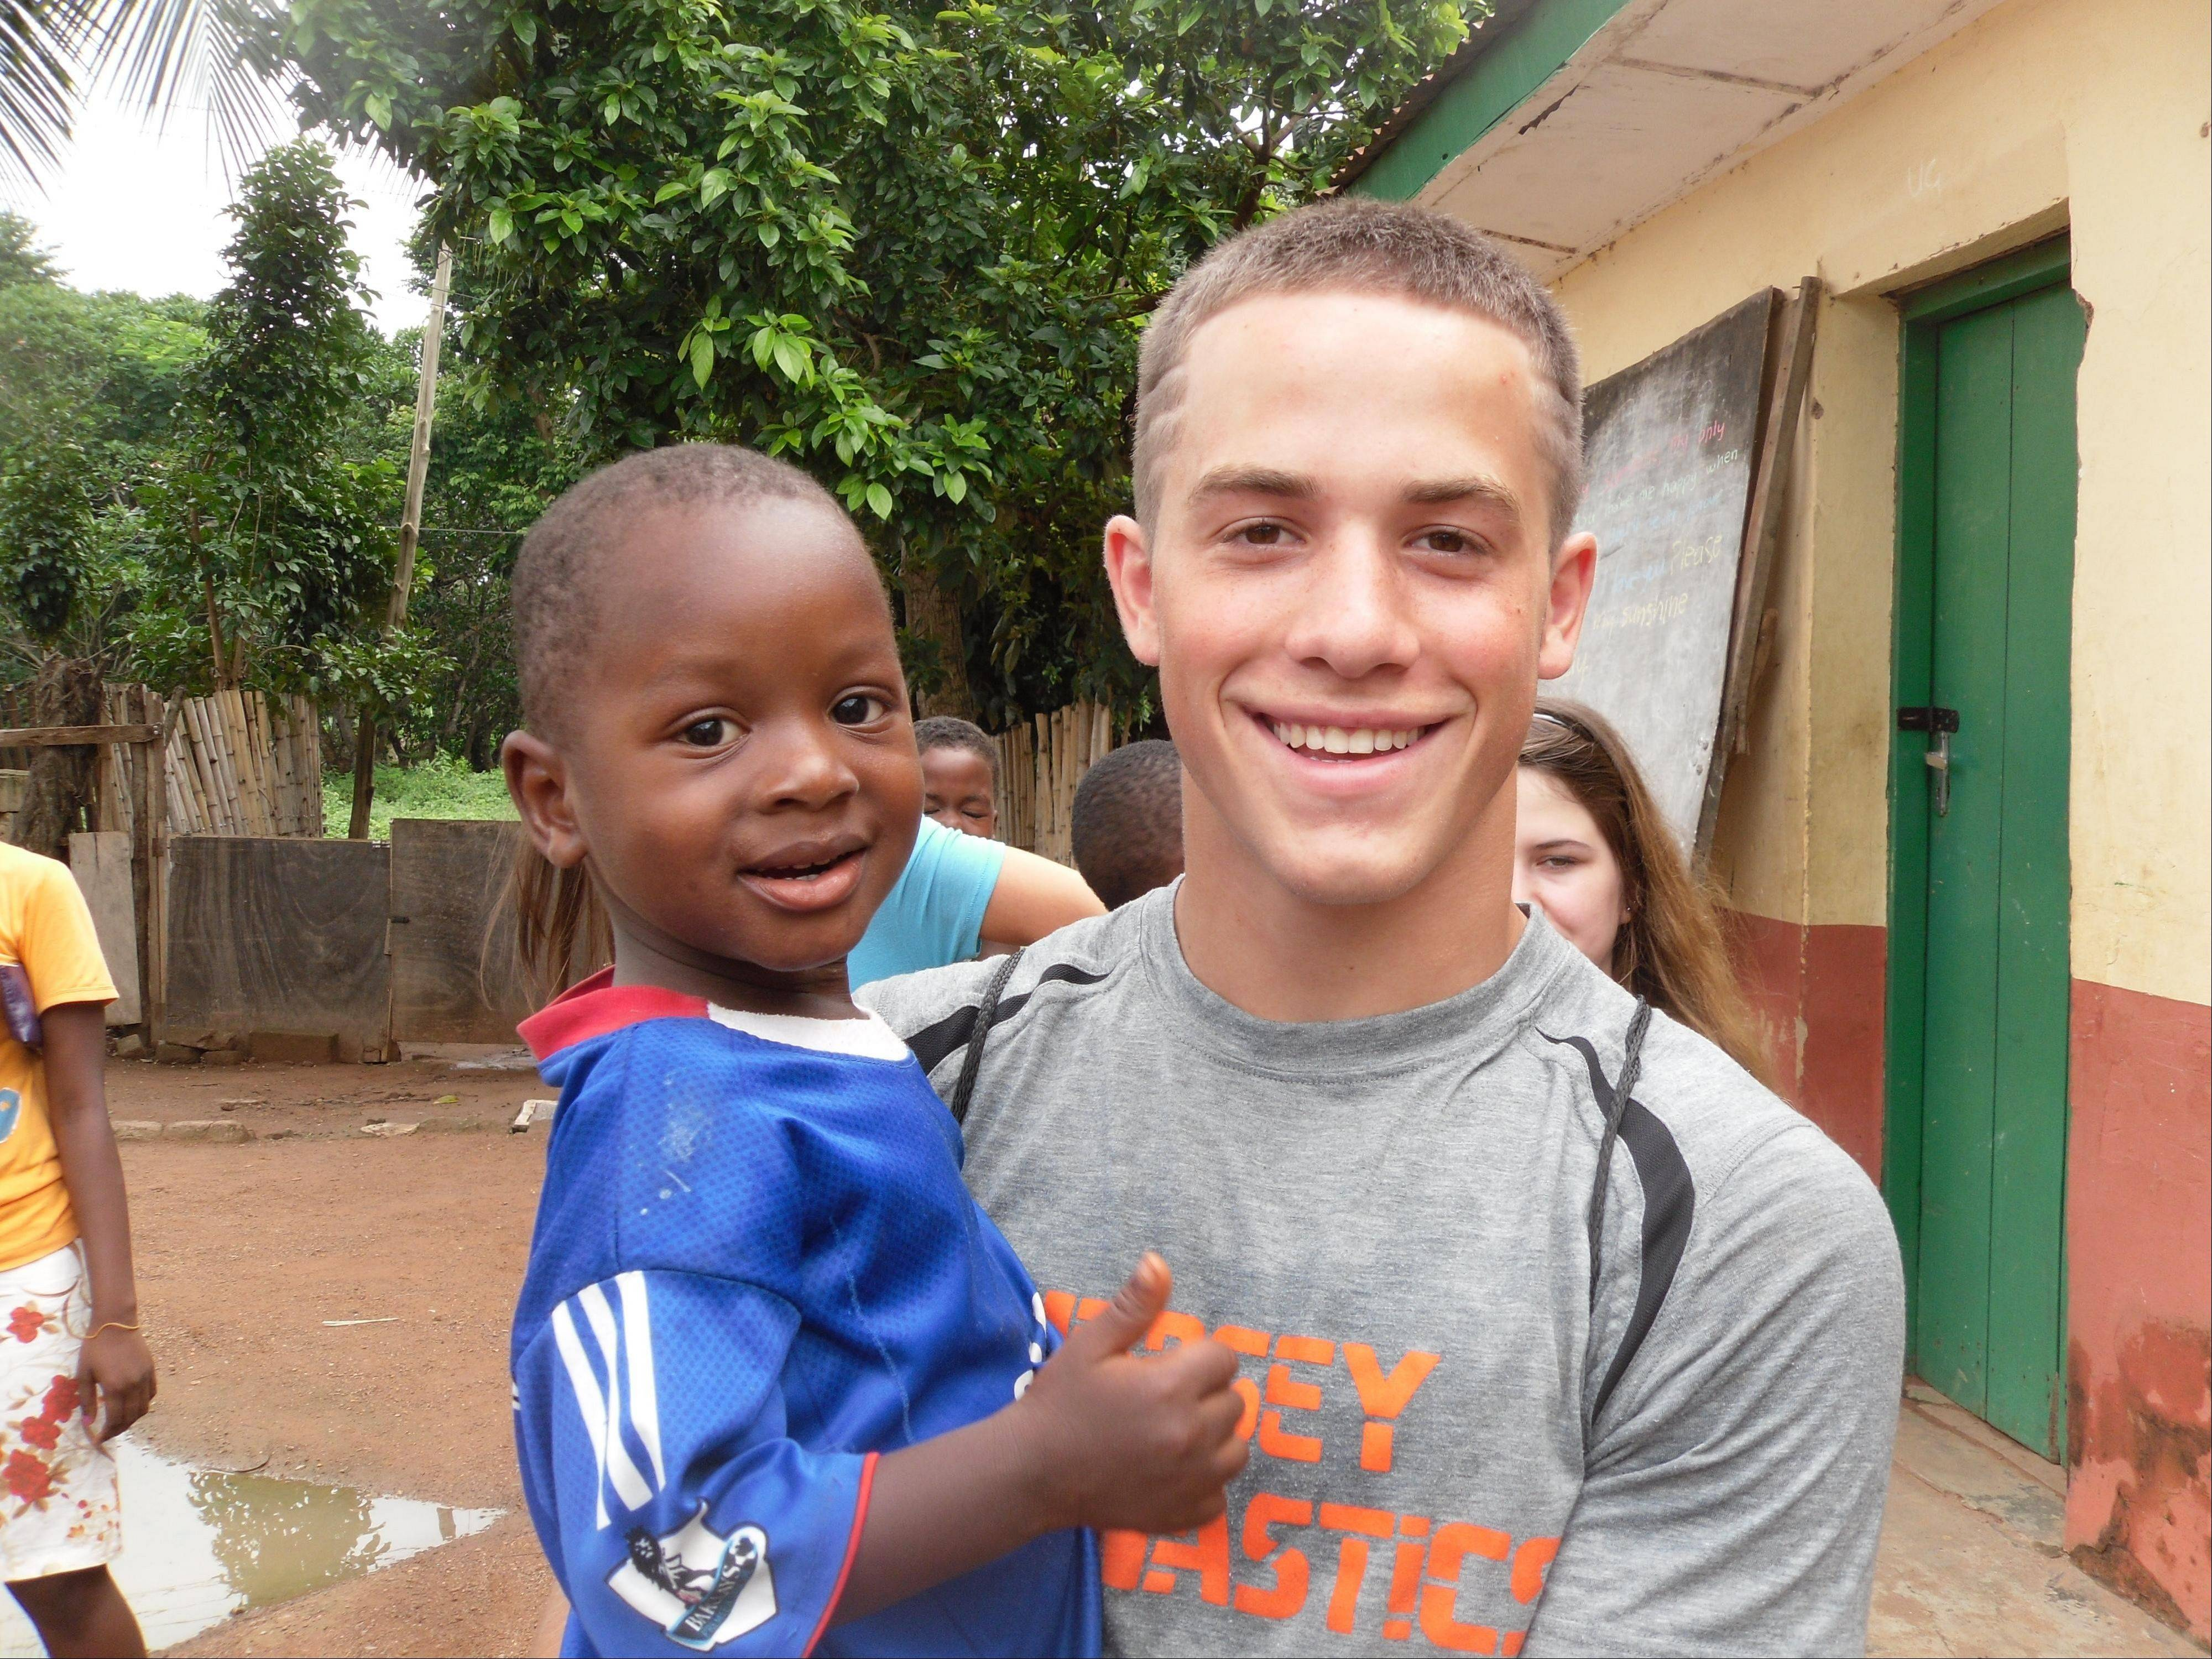 Hersey High School student Alex Baratta, 17, plays with one of the children from Ghana during his volunteer trip.